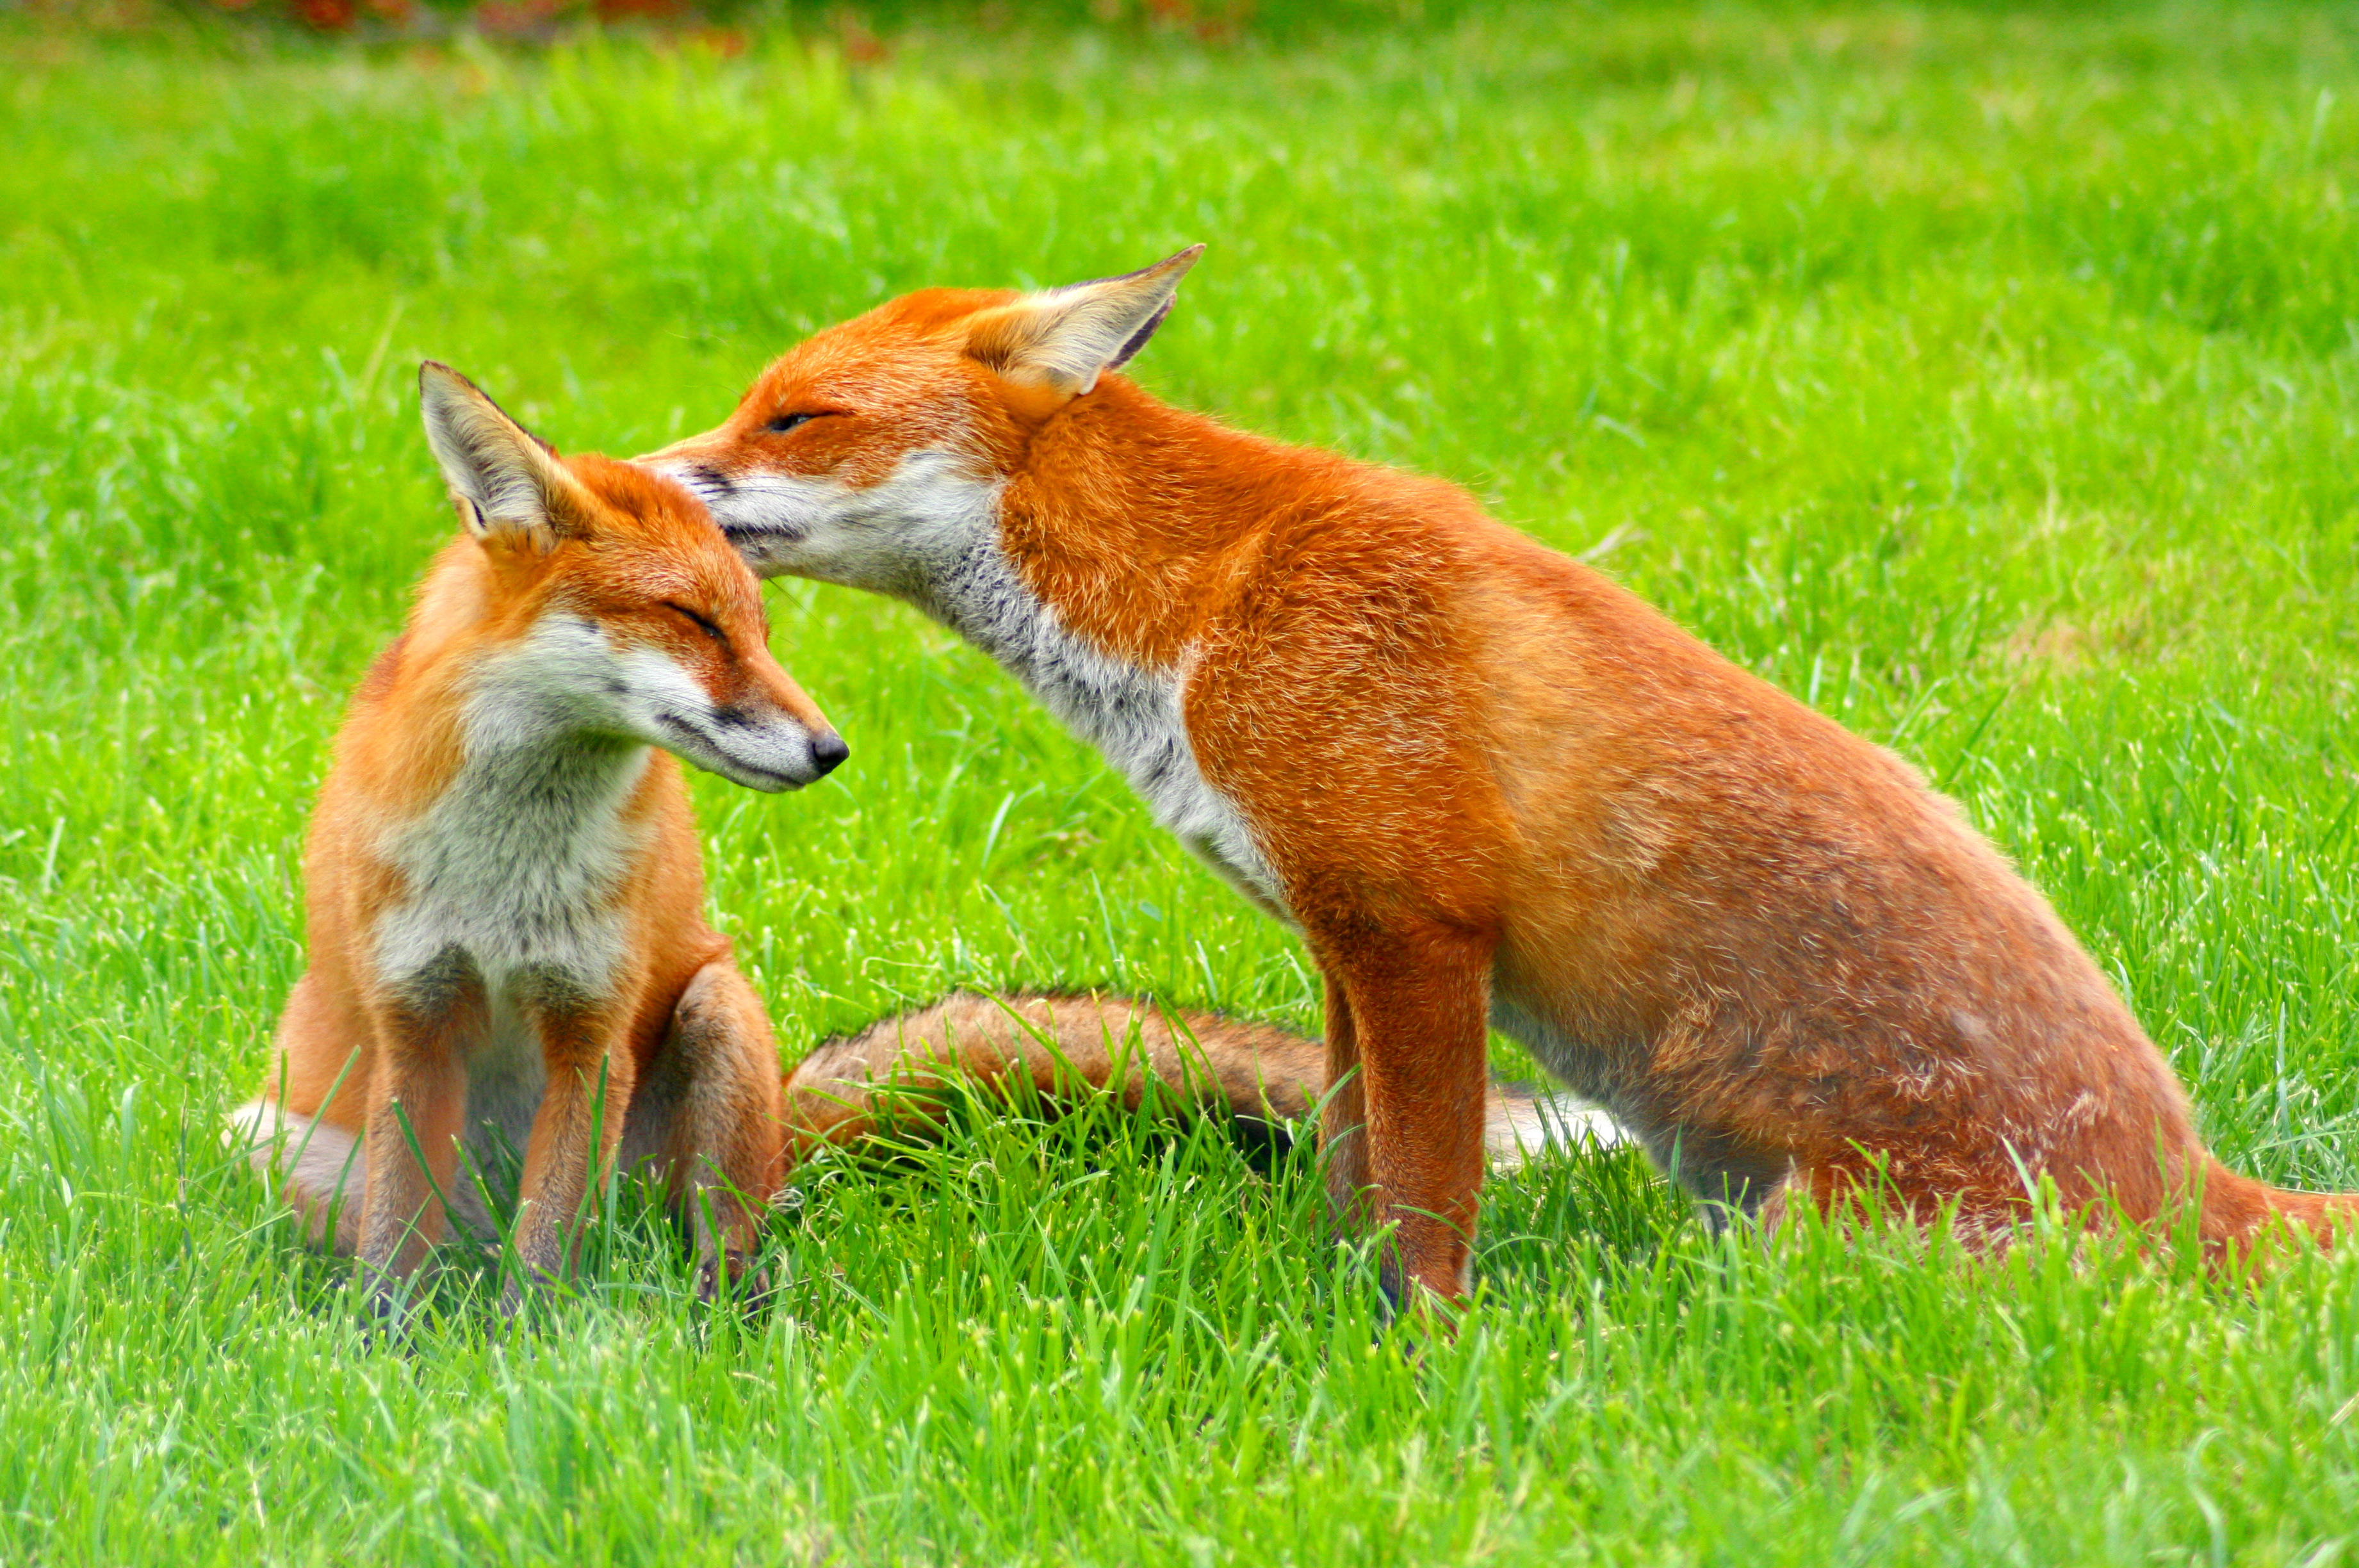 https://upload.wikimedia.org/wikipedia/commons/e/ee/Red_Fox_(Vulpes_vulpes)_-British_Wildlife_Centre-8.jpg